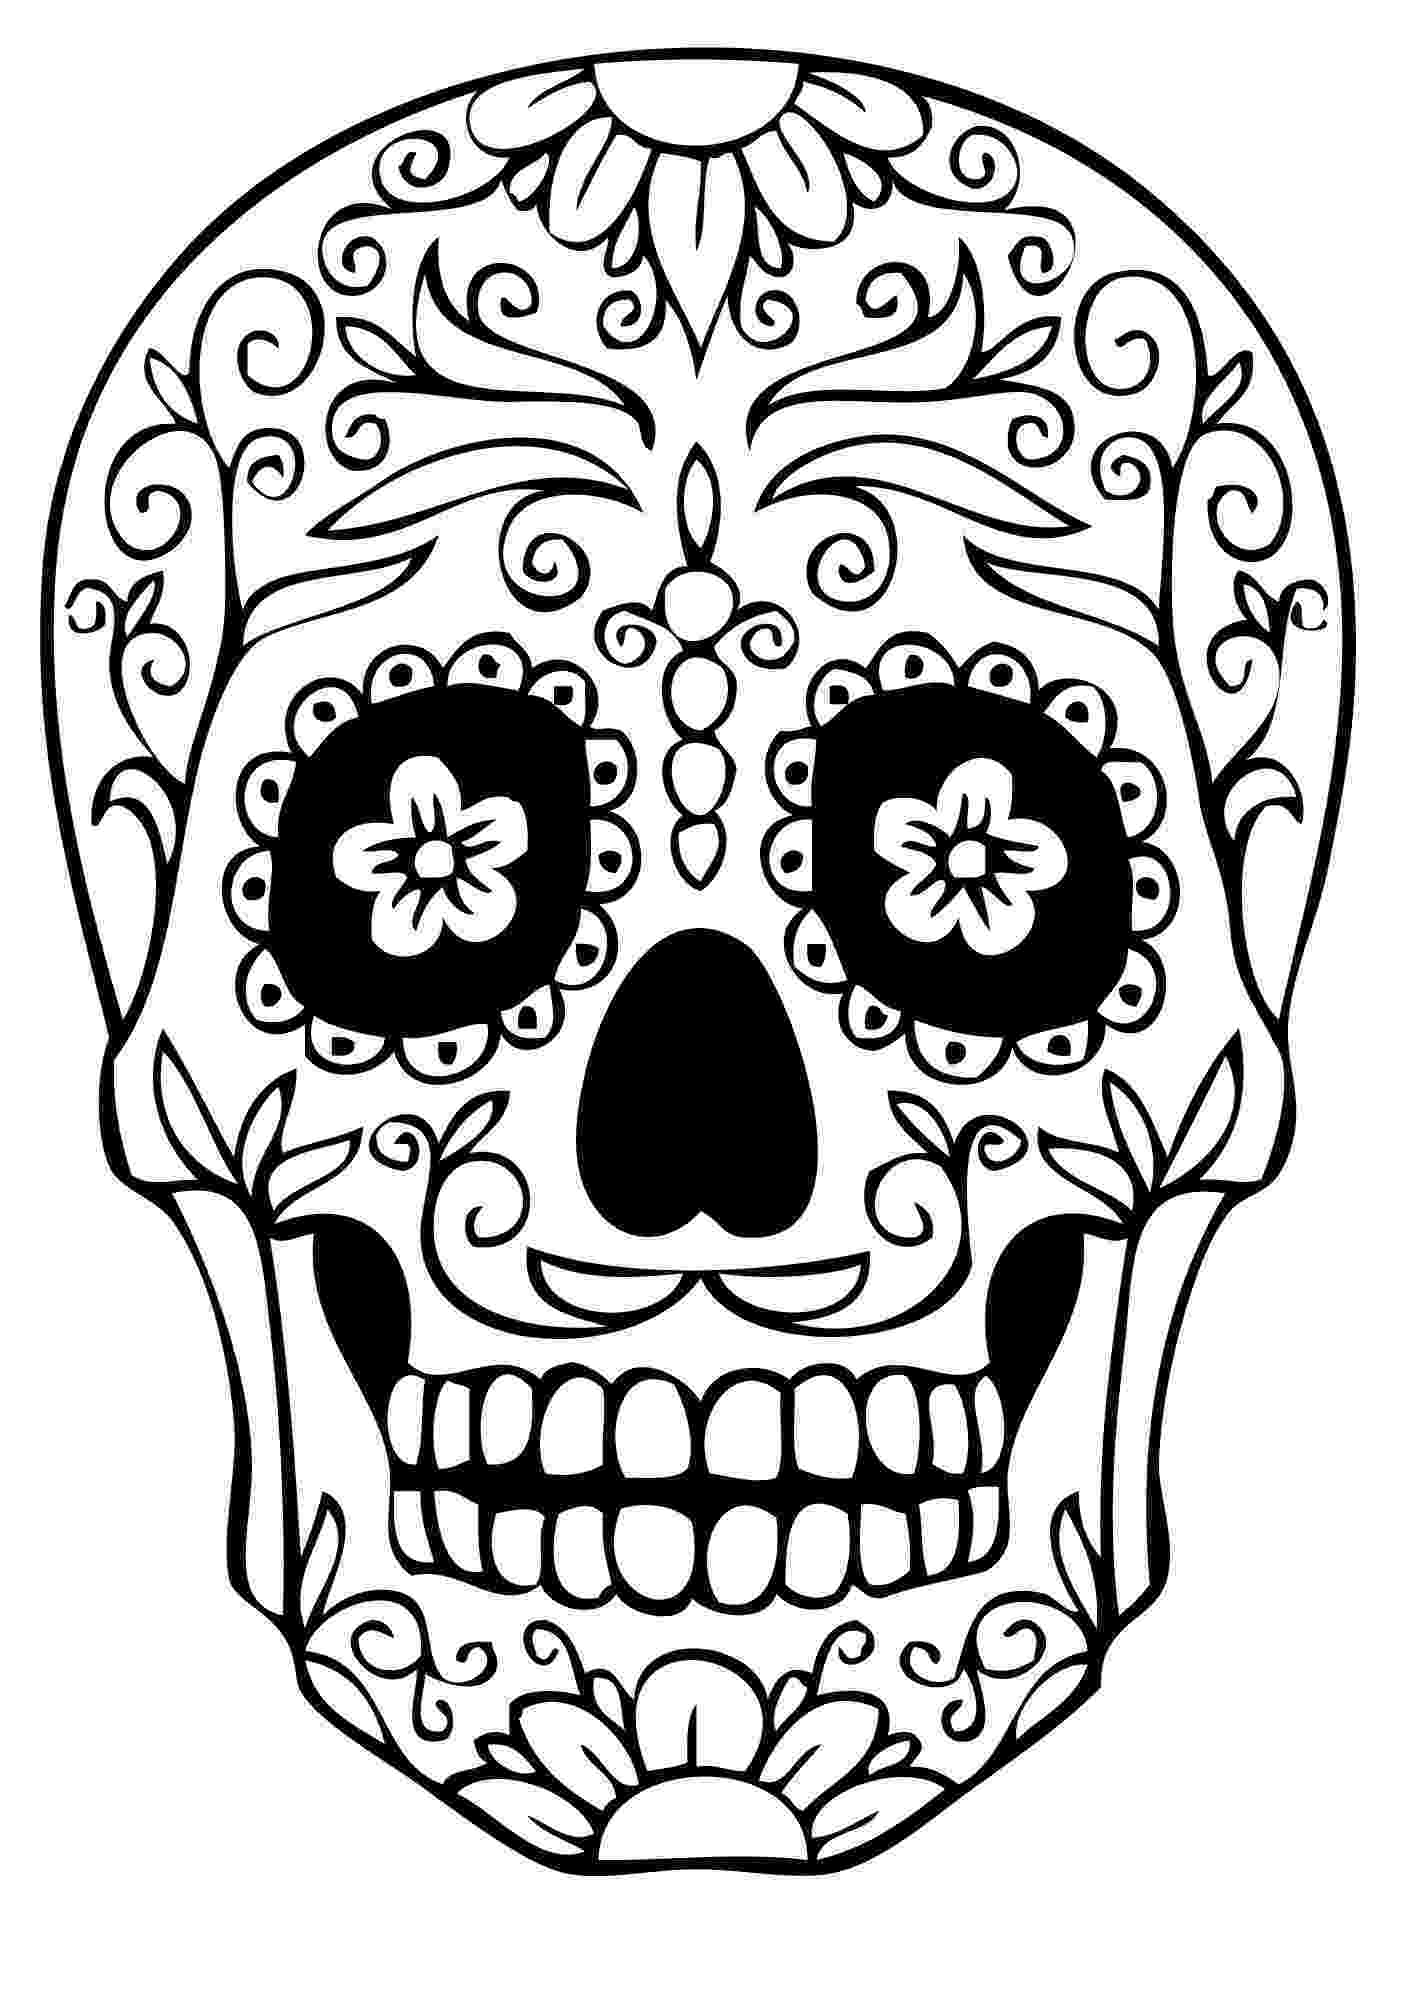 skull coloring sheet skull coloring pages for adults sheet coloring skull